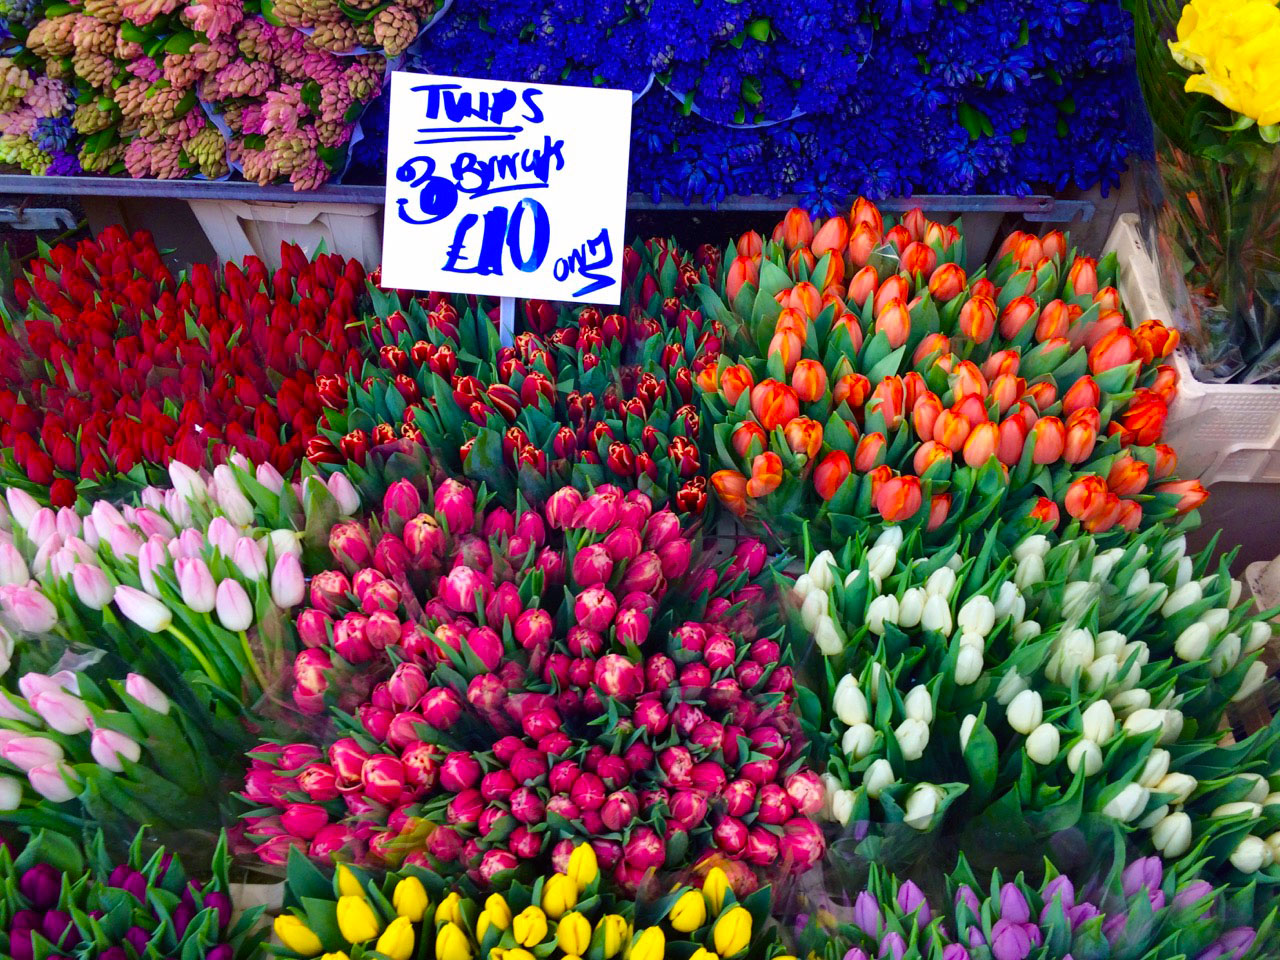 Columbia-Road-Flower-Market-10.jpg